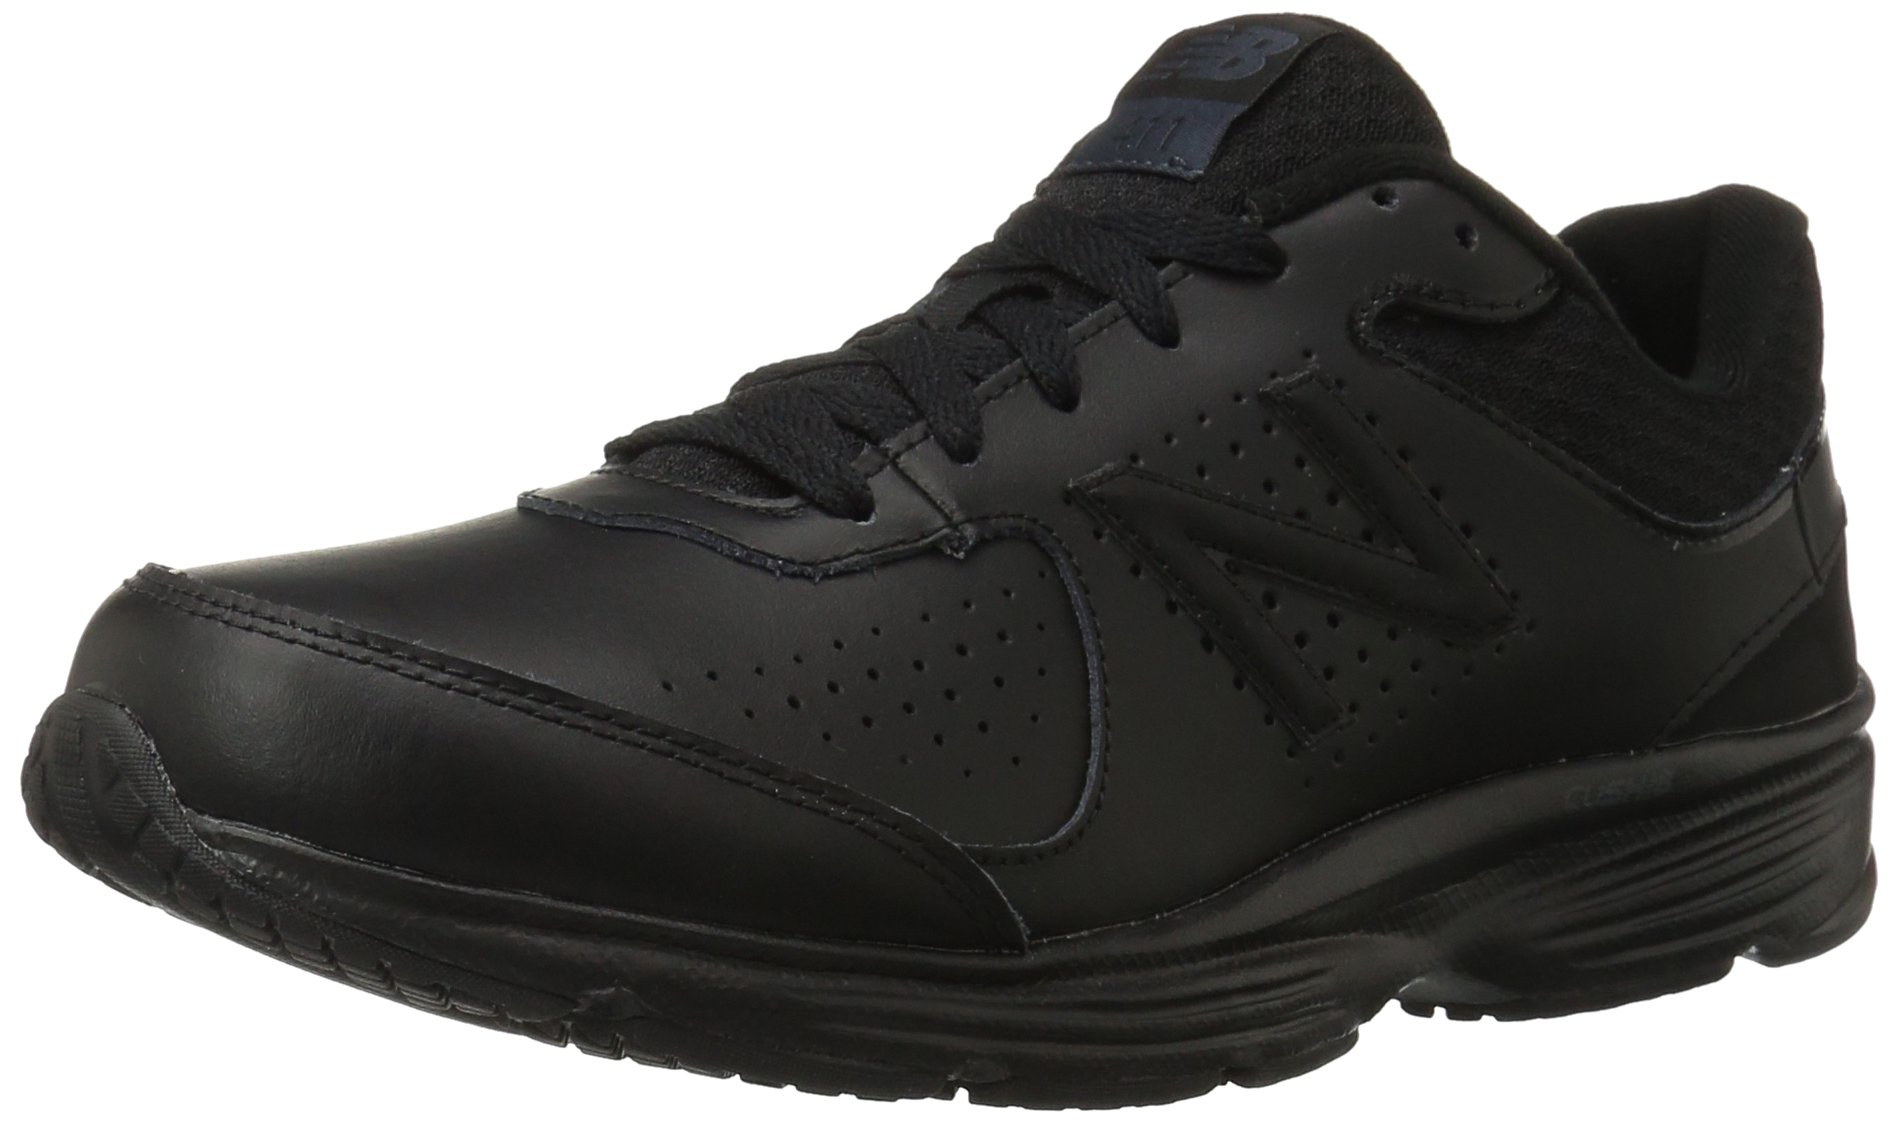 New Balance Men's MW411v2 Walking Shoe, Black, 11 2E US by New Balance